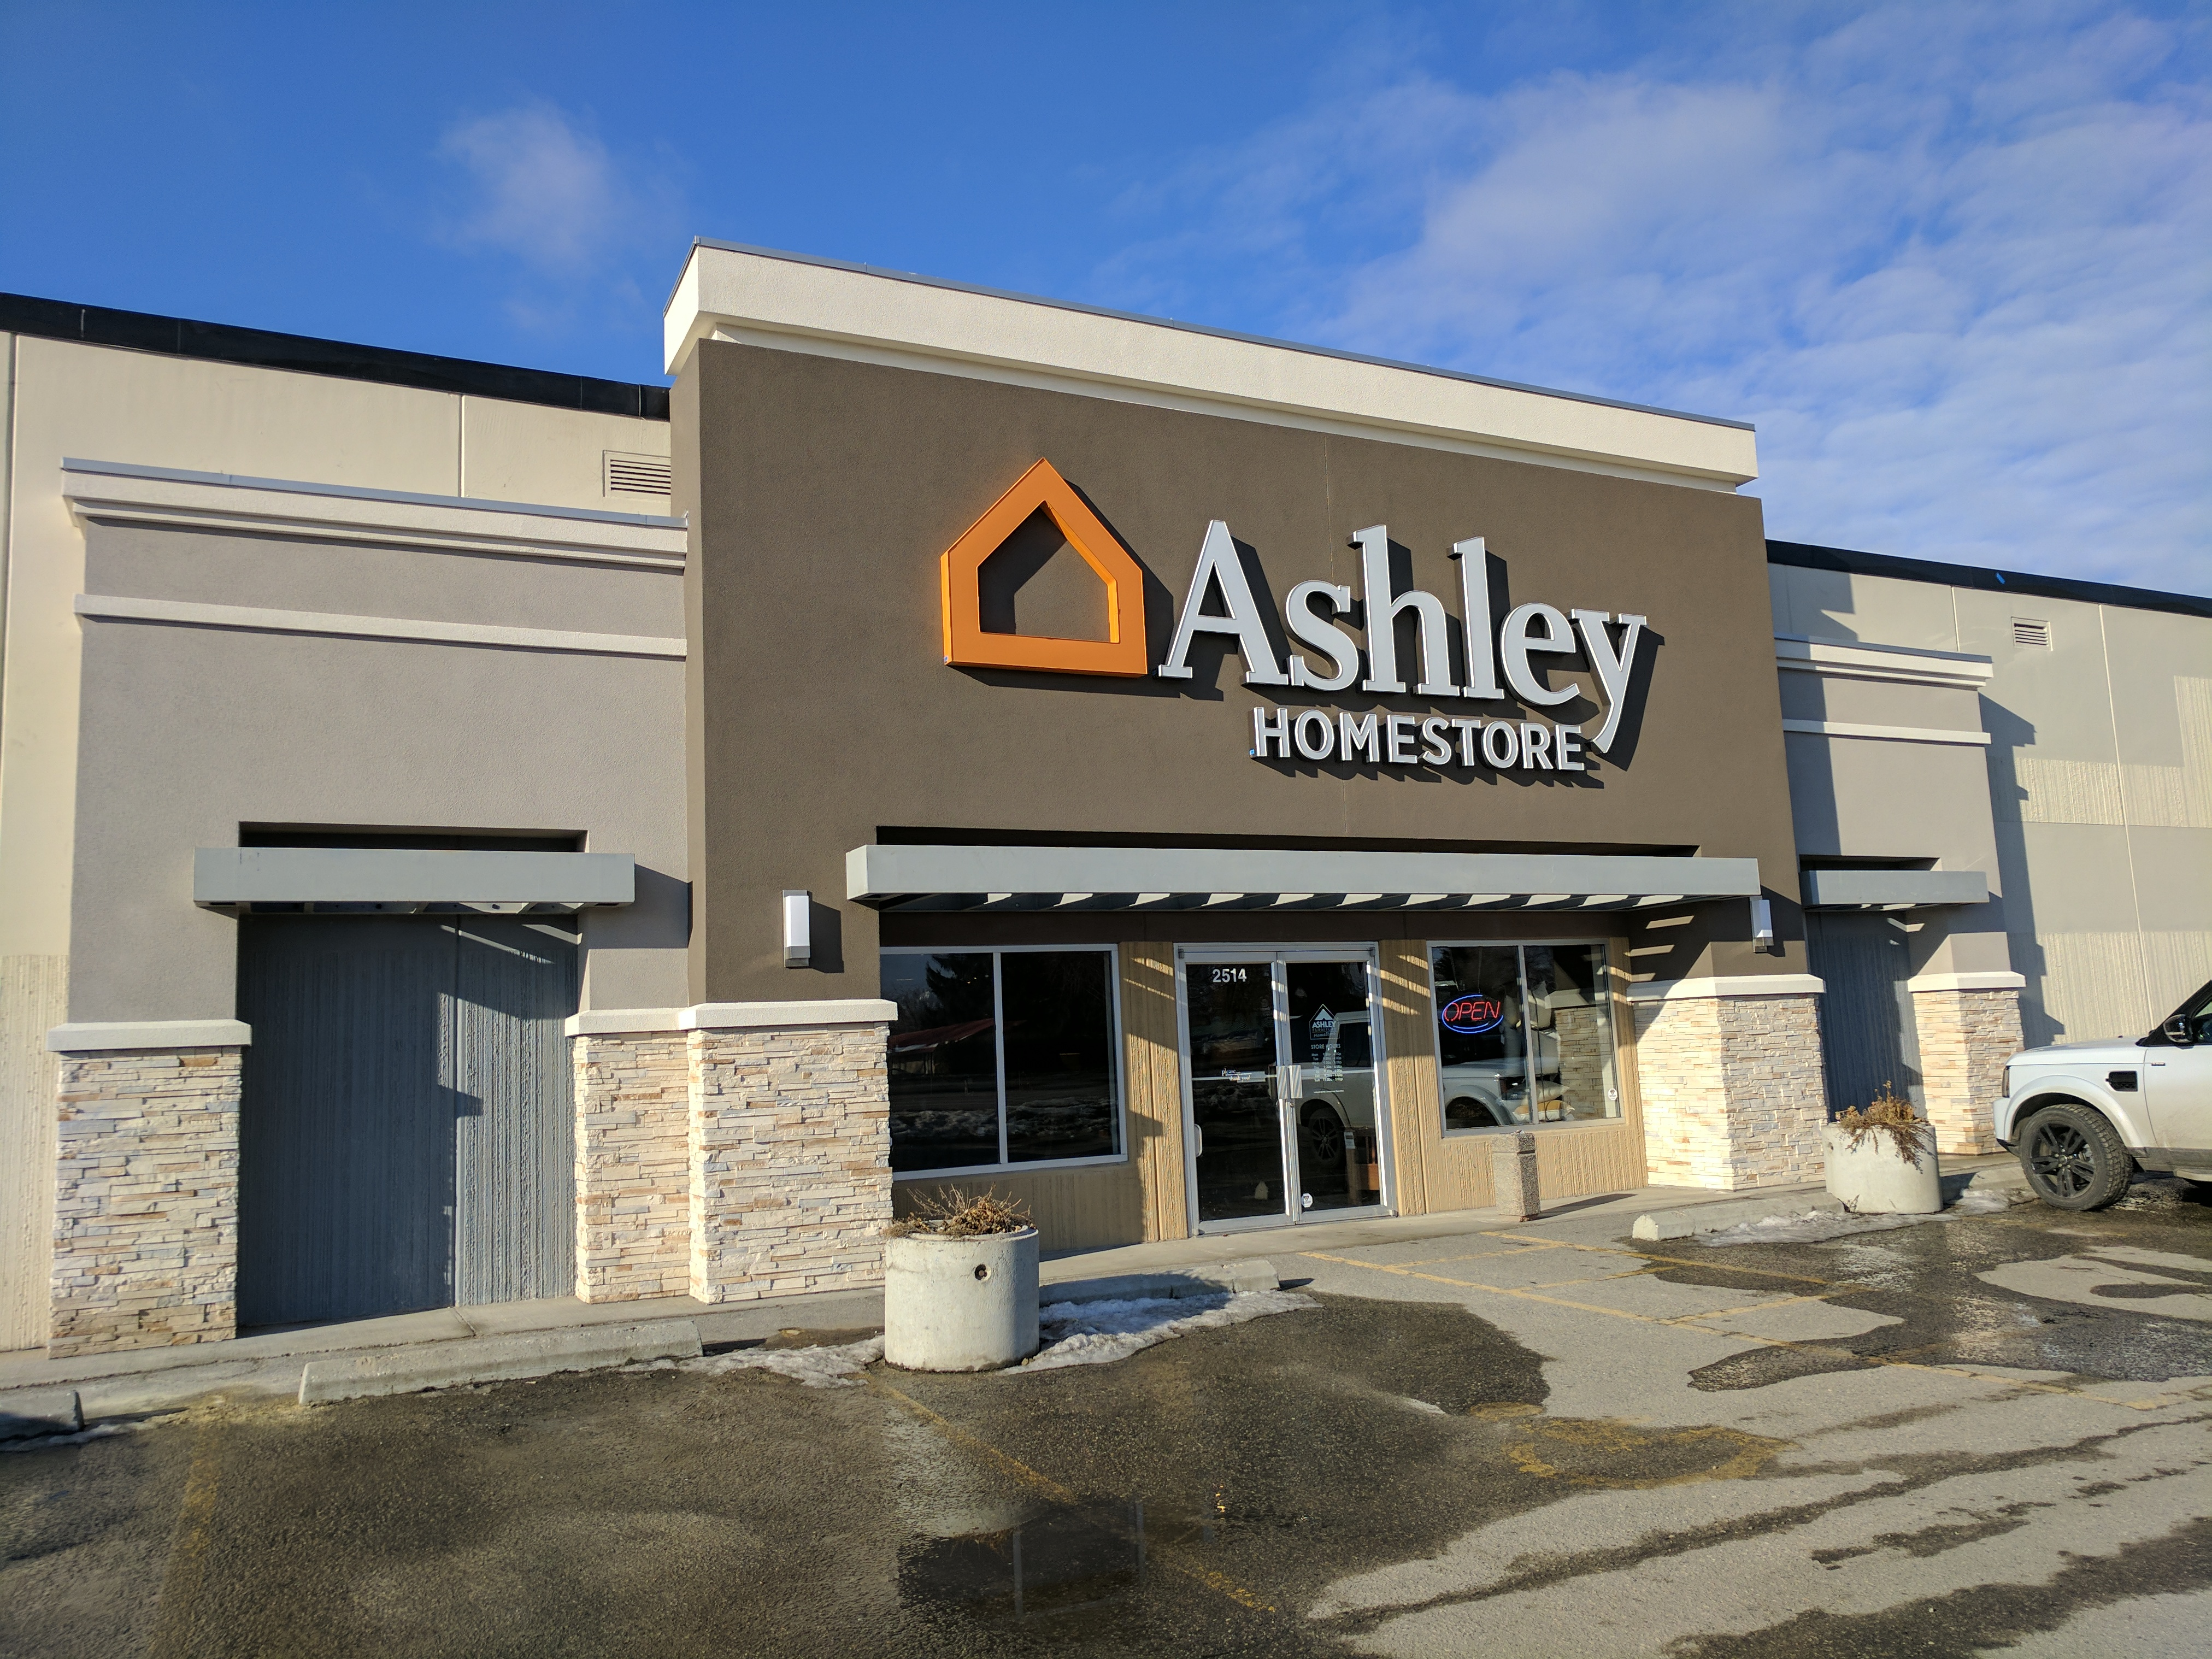 Swell Furniture And Mattress Store In Kelowna Bc Ashley Squirreltailoven Fun Painted Chair Ideas Images Squirreltailovenorg